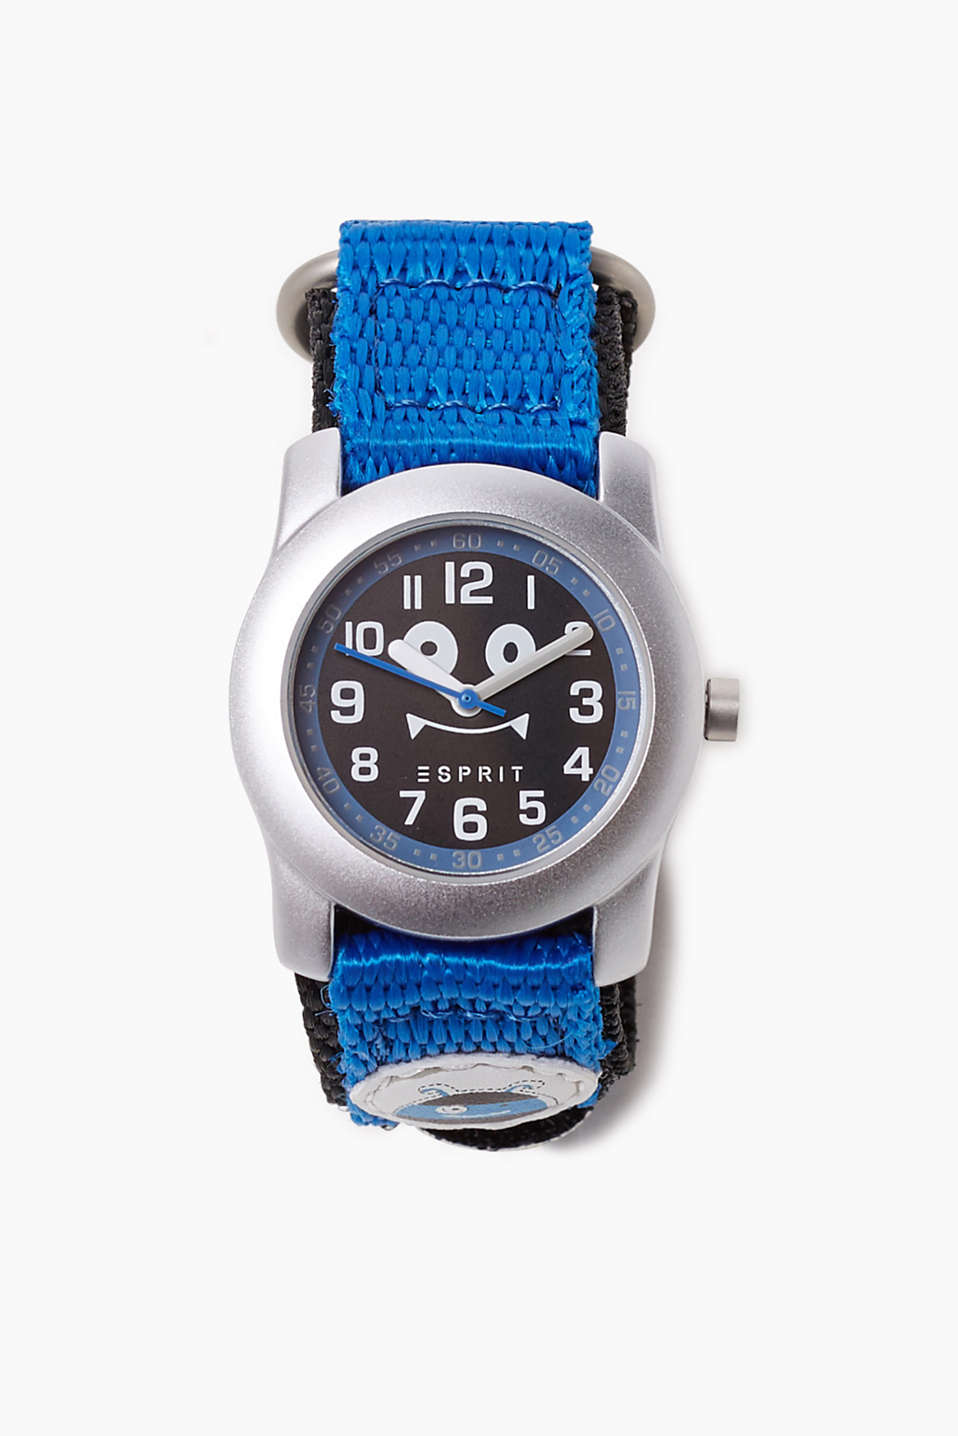 With a little gift: kids watch with a Velcro strap and stick-on tattoos